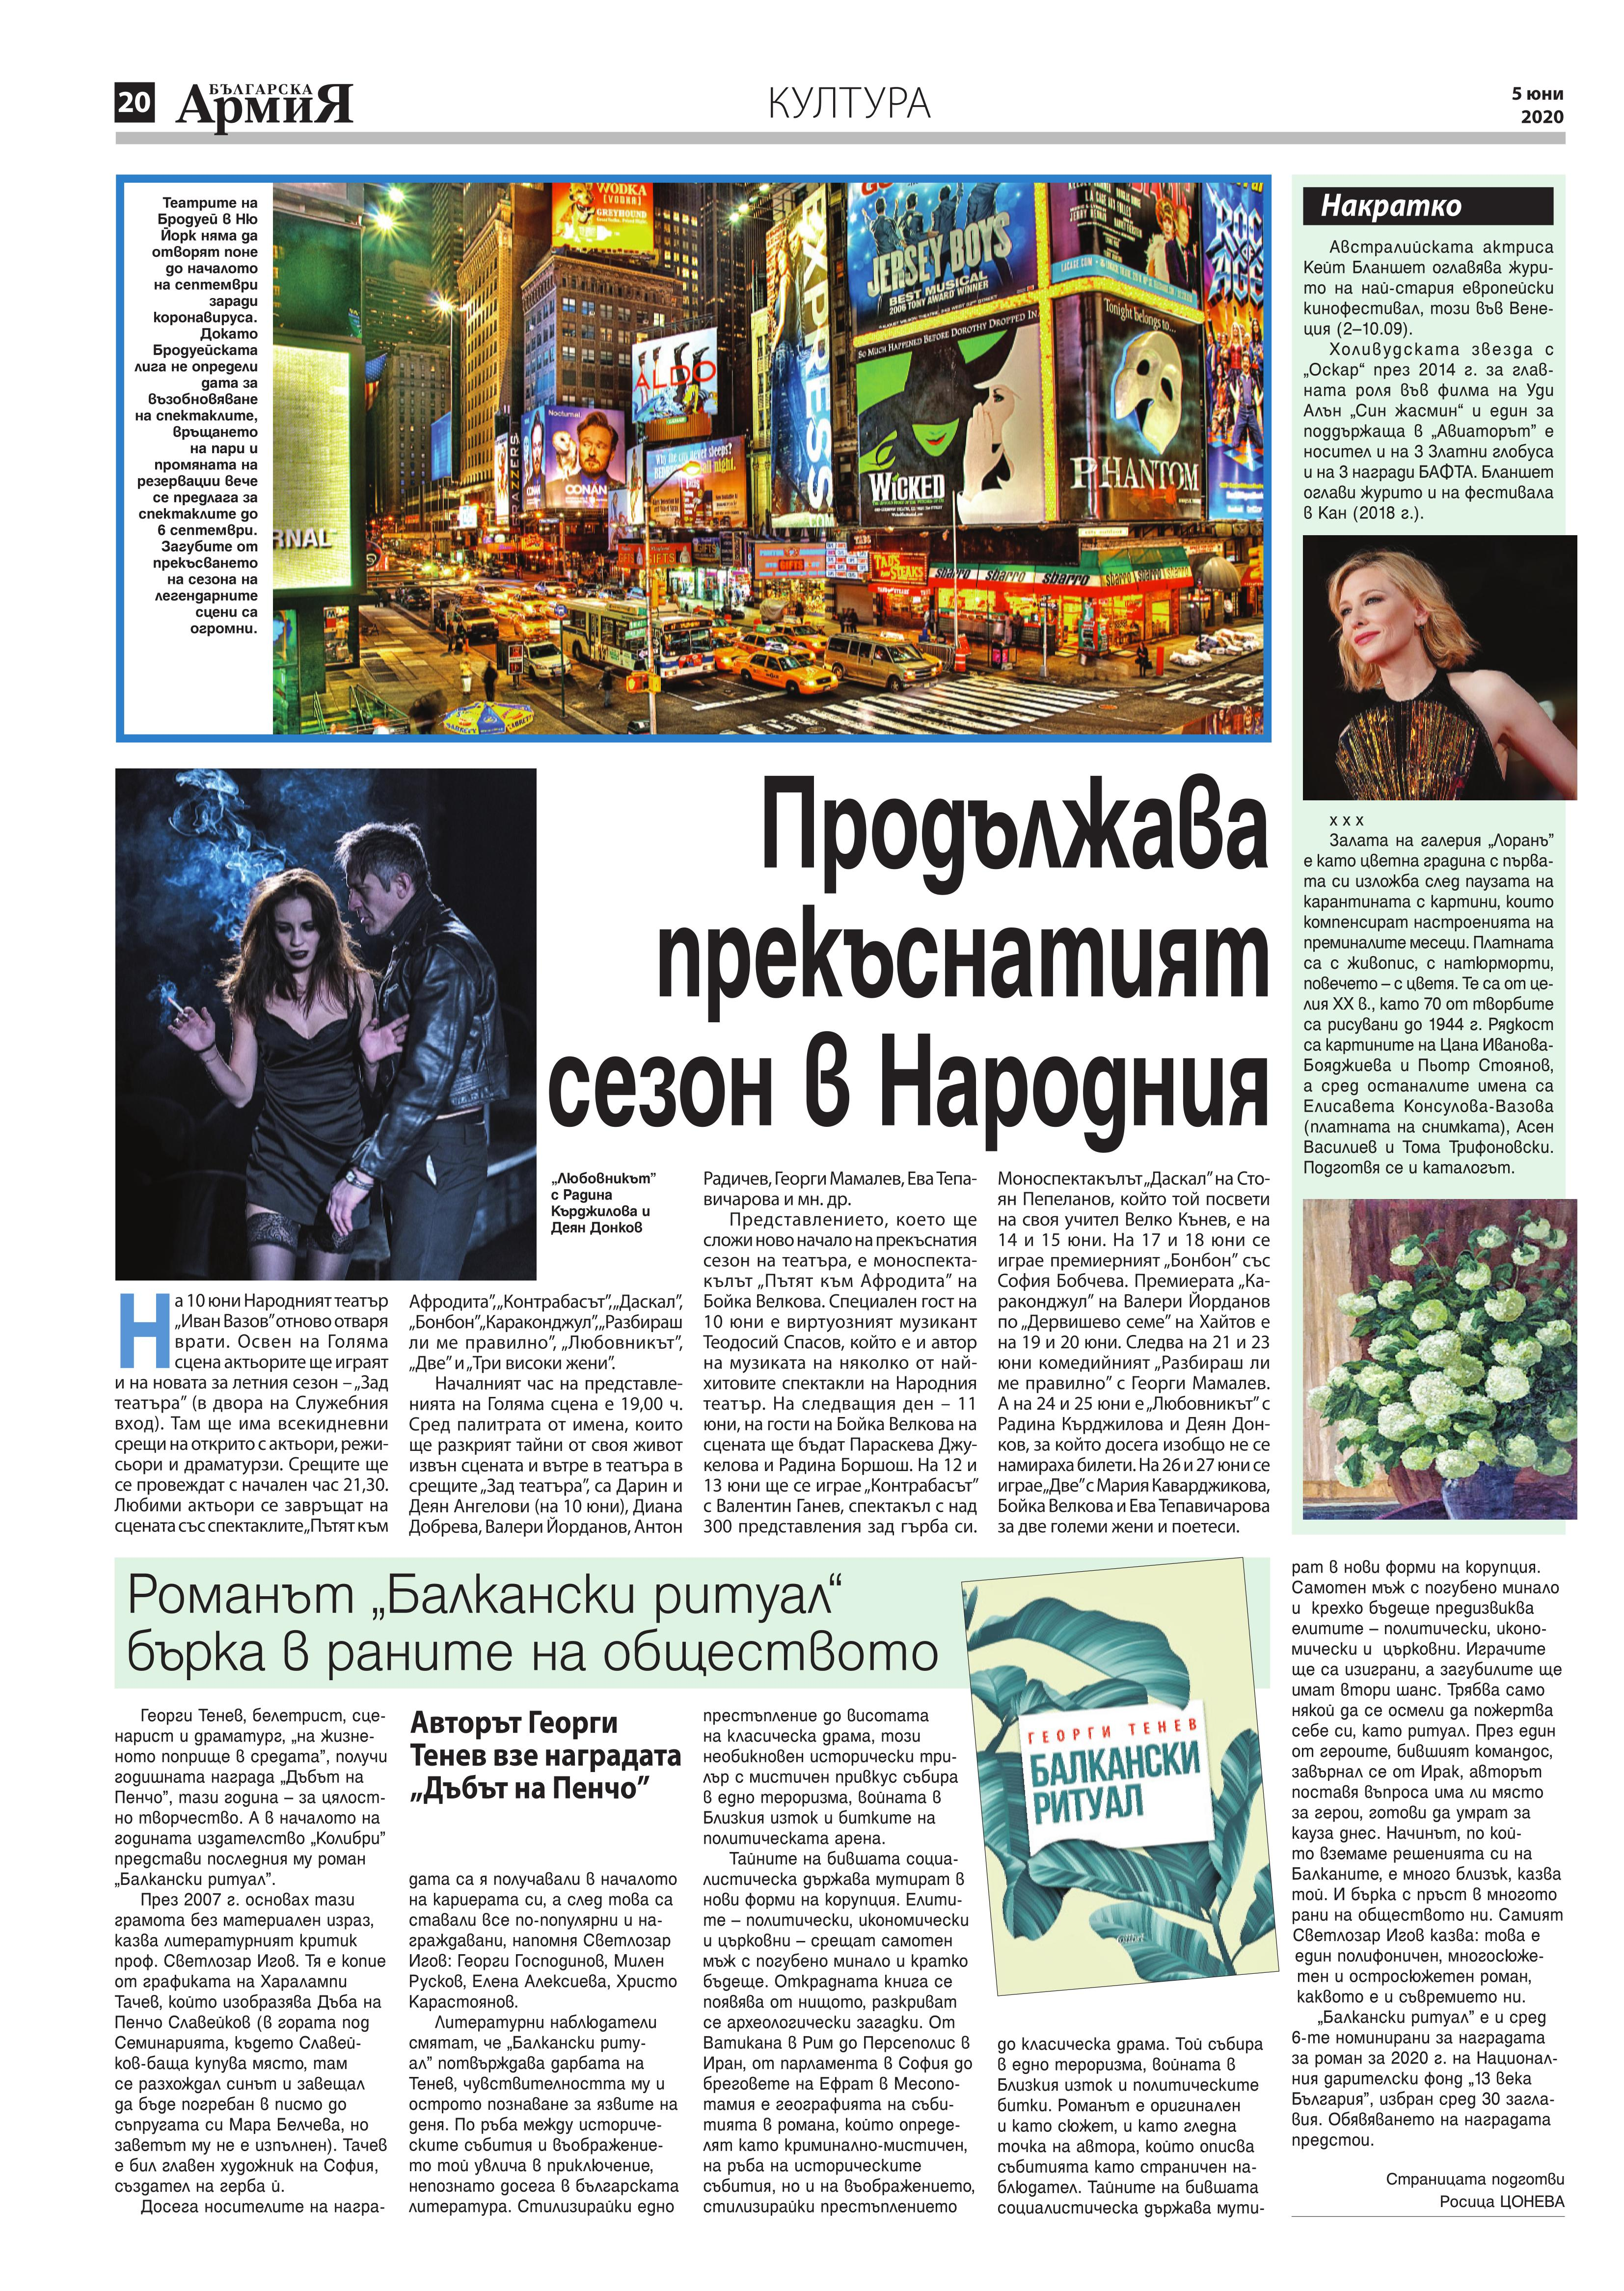 https://armymedia.bg/wp-content/uploads/2015/06/20.page1_-141.jpg